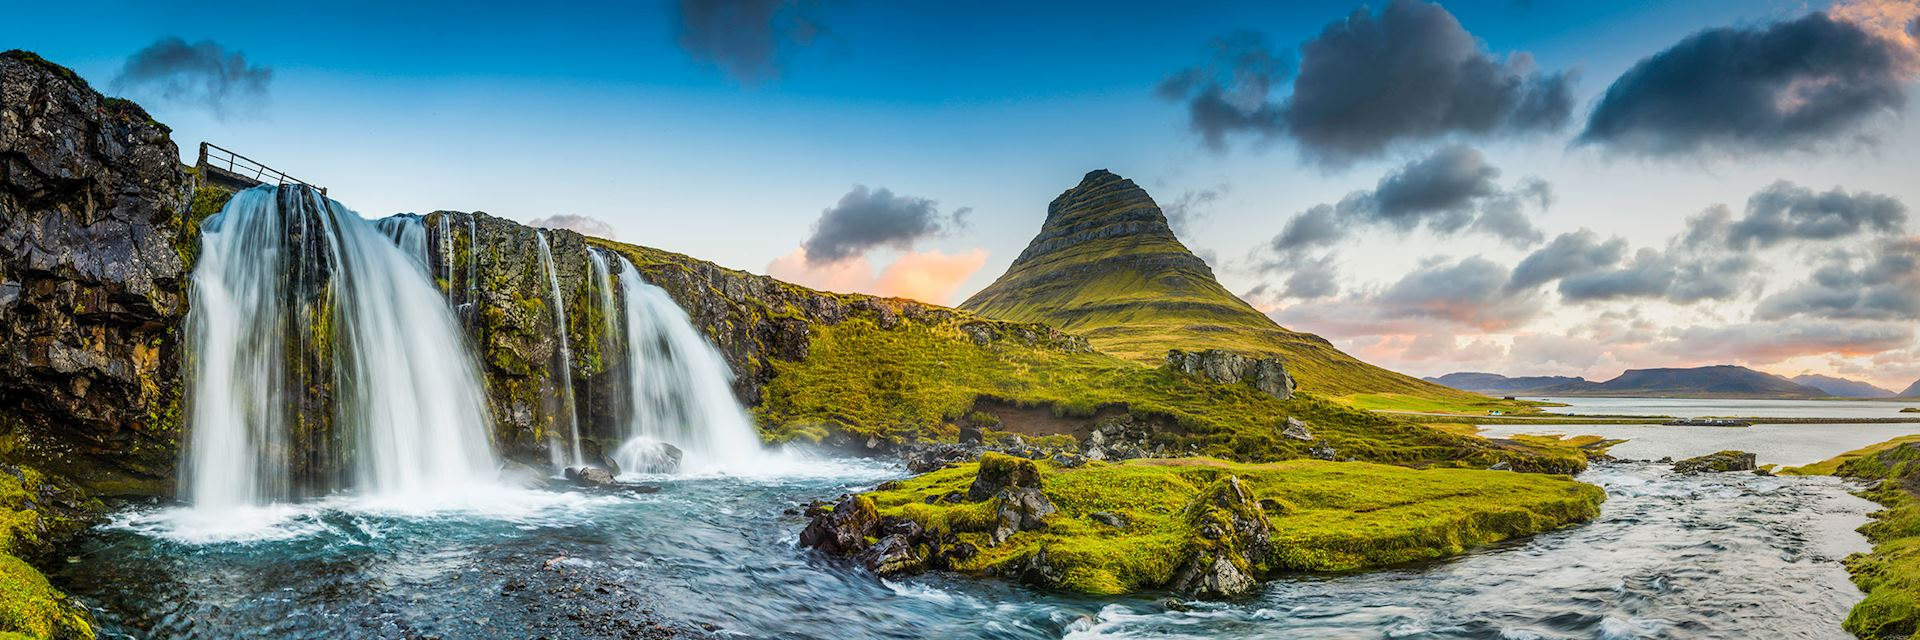 Mountain waterfalls, Kirkjufell